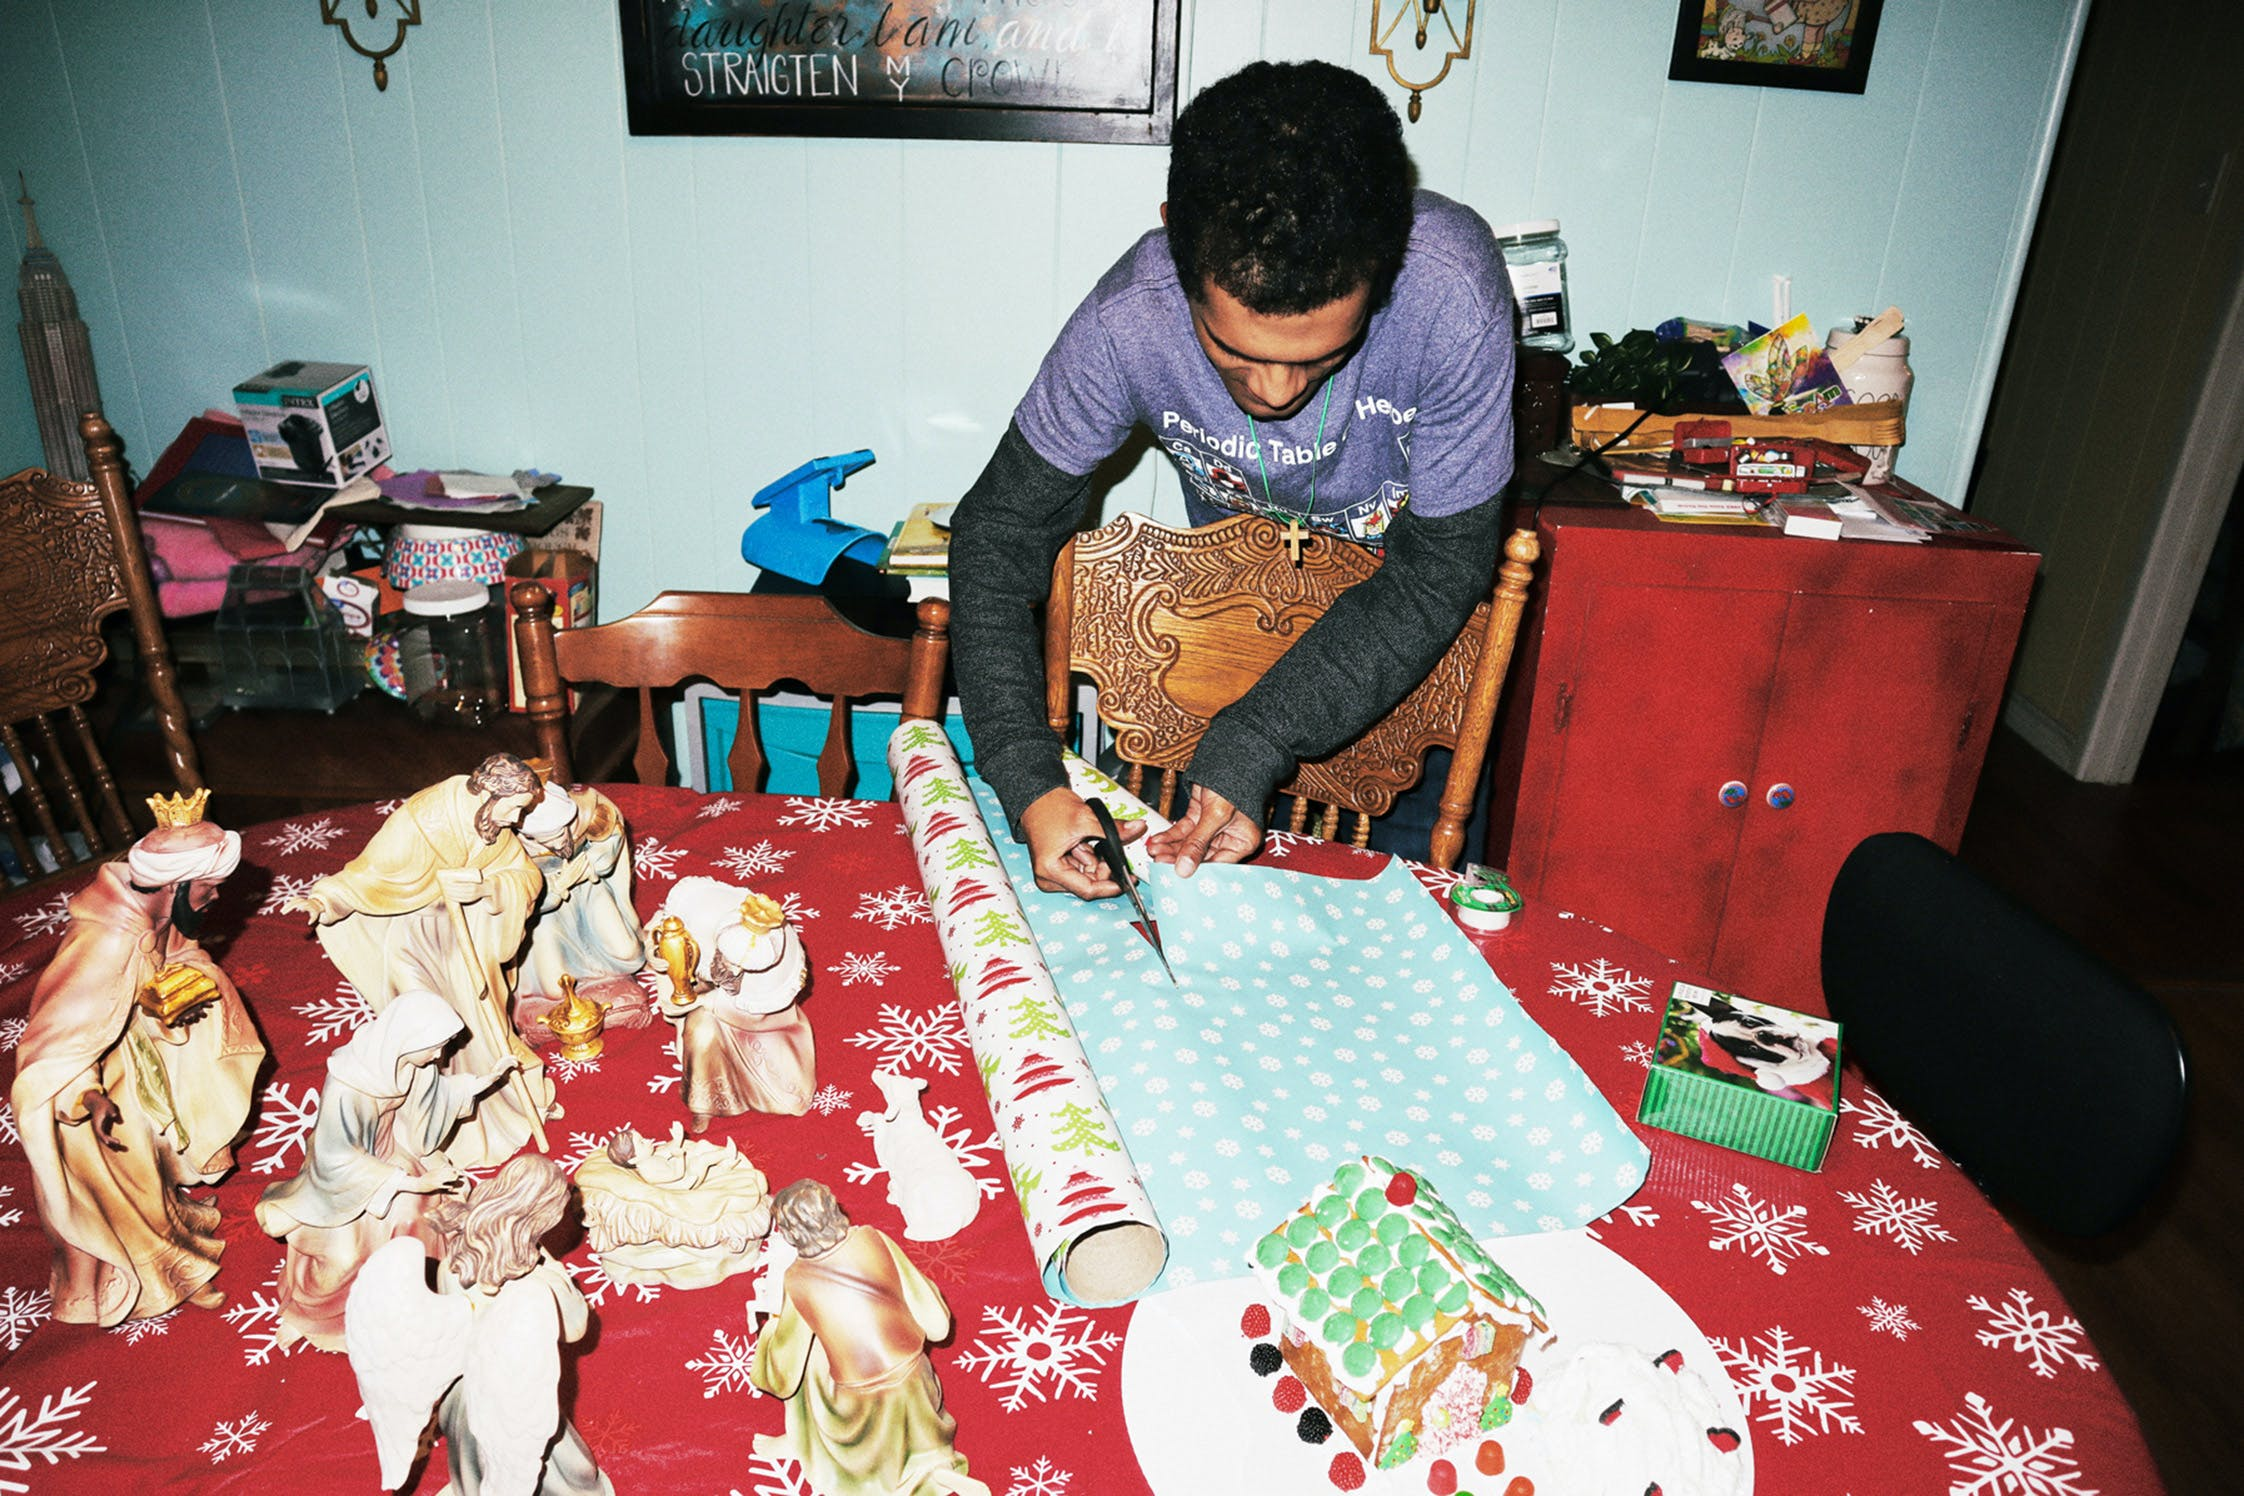 Chris cuts paper to wrap his Christmas gifts with.